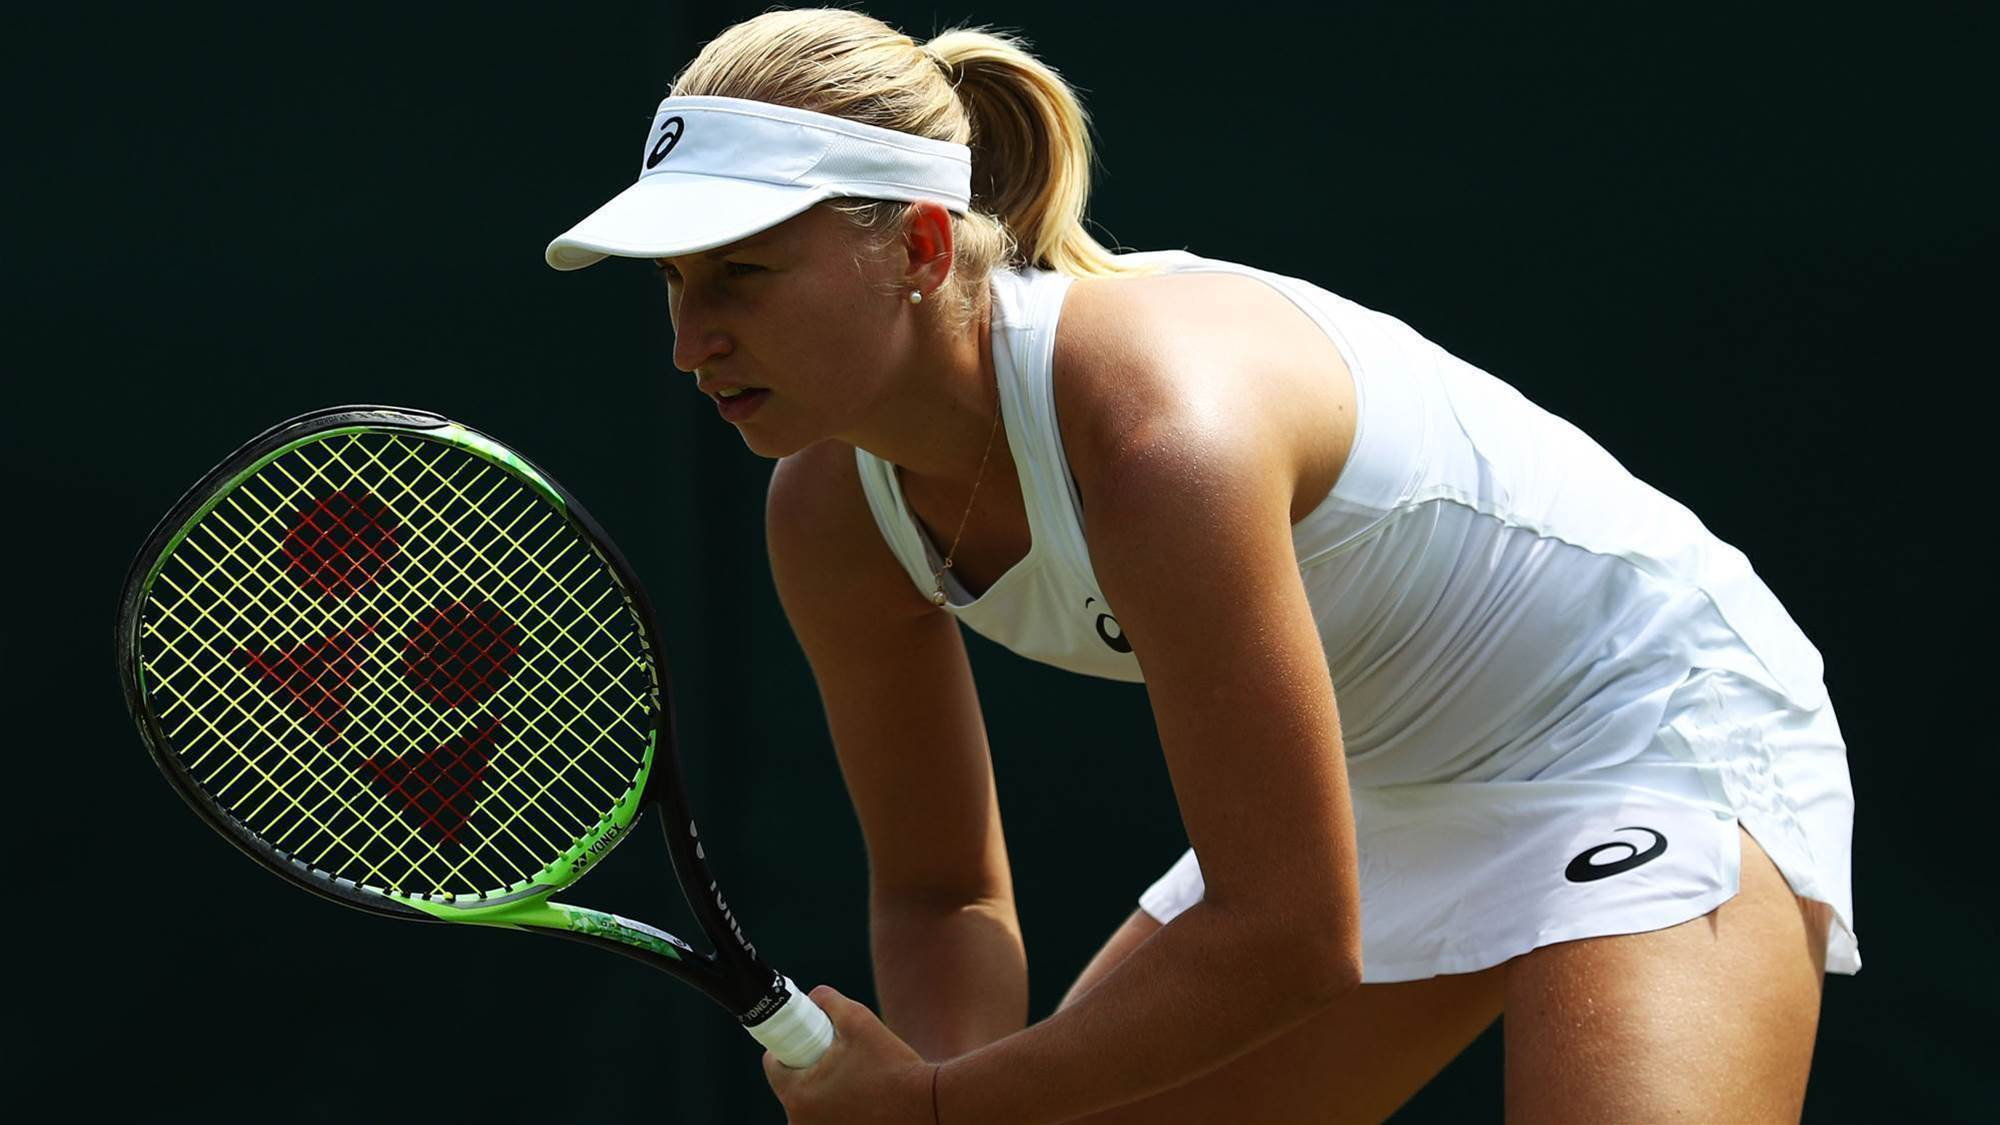 Barty and Gavrilova both suffer defeats